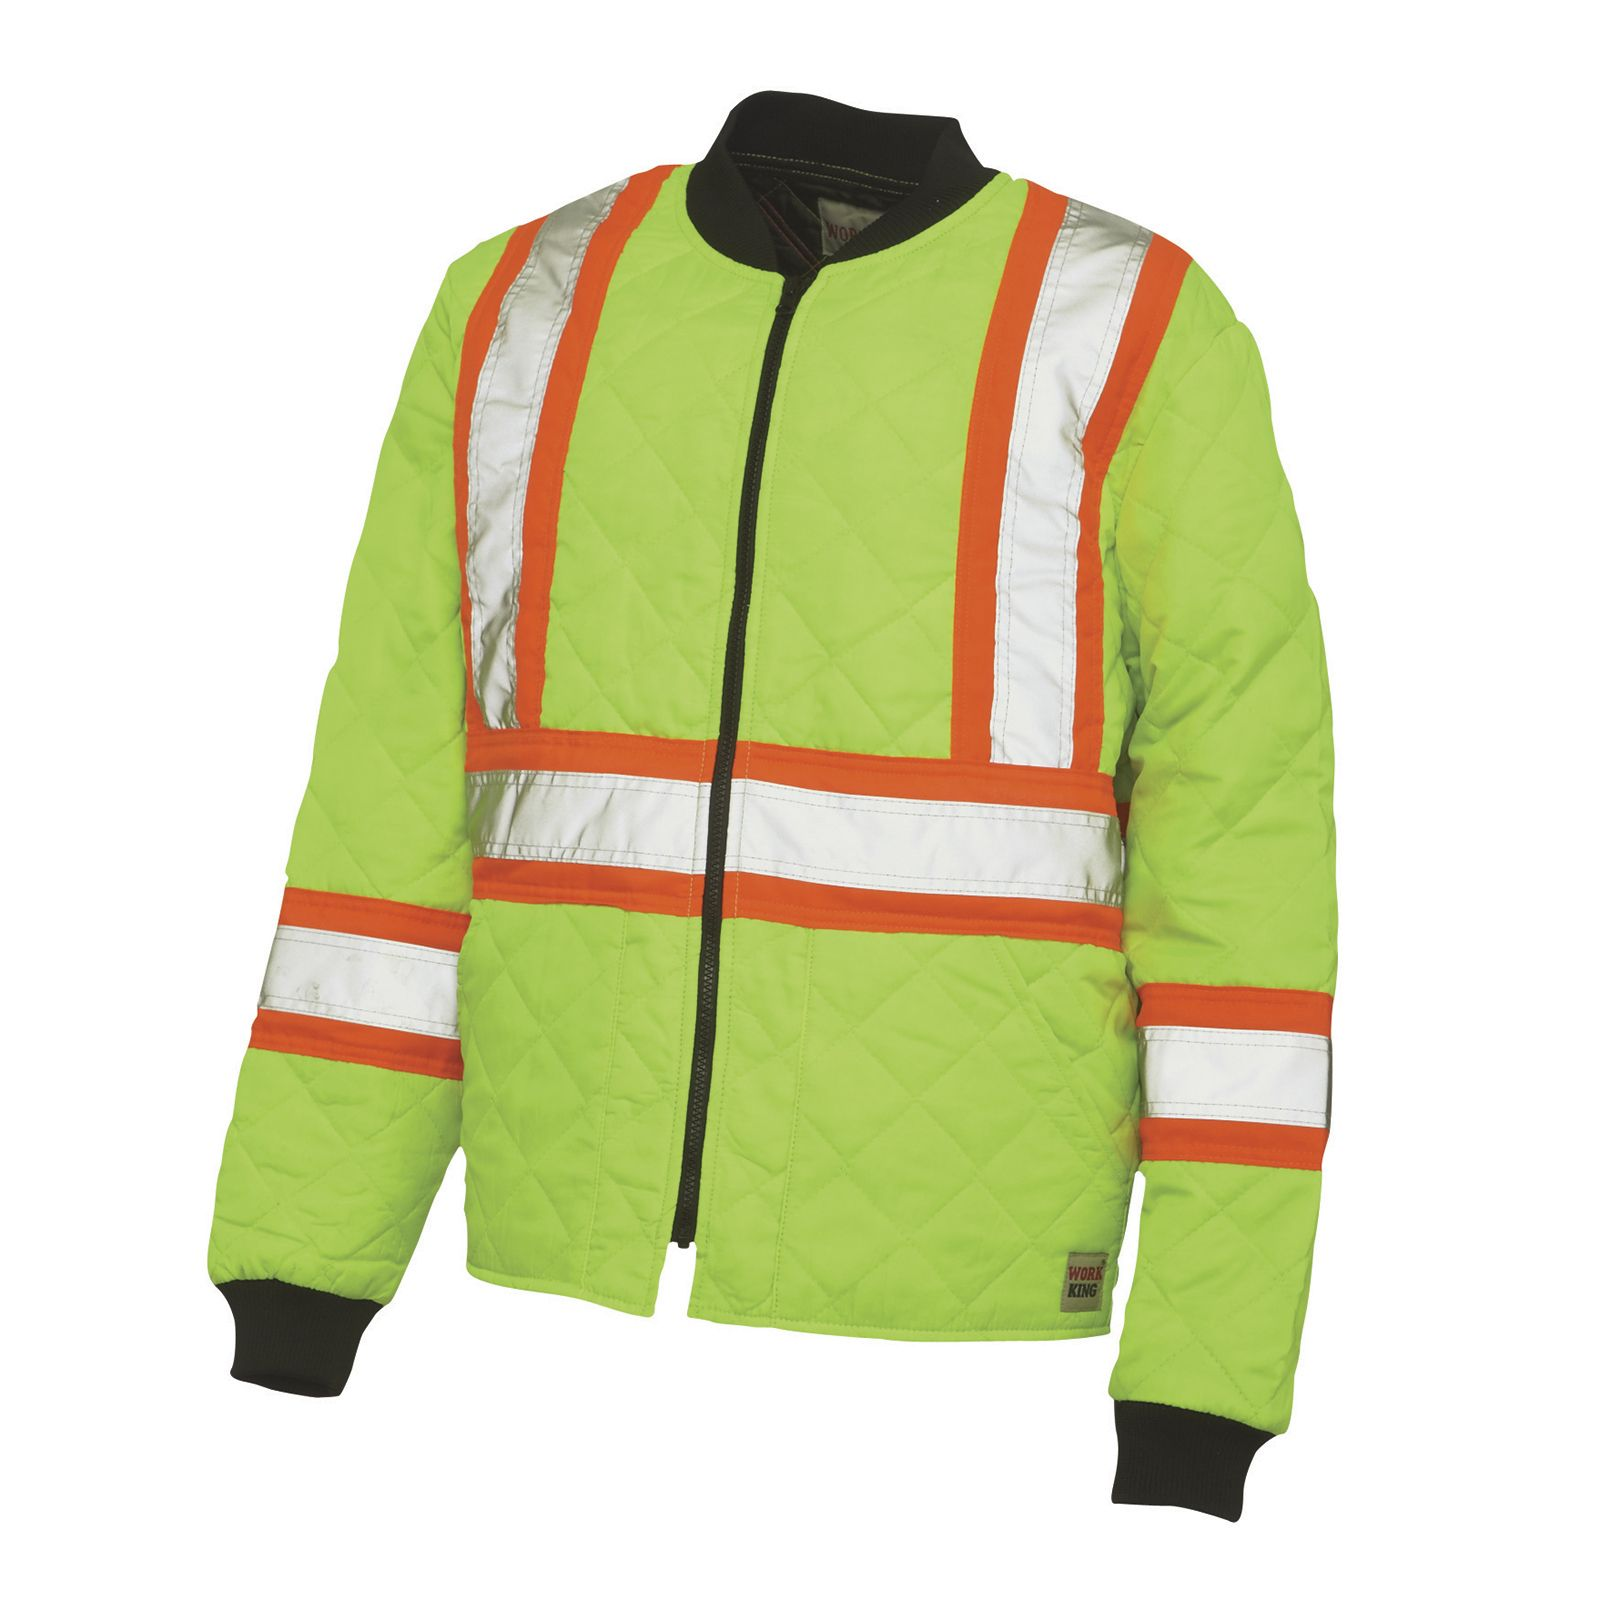 Work King Freezer Jacket Upc 770167591740 Work King High Visibility Quilted Safety Jacket